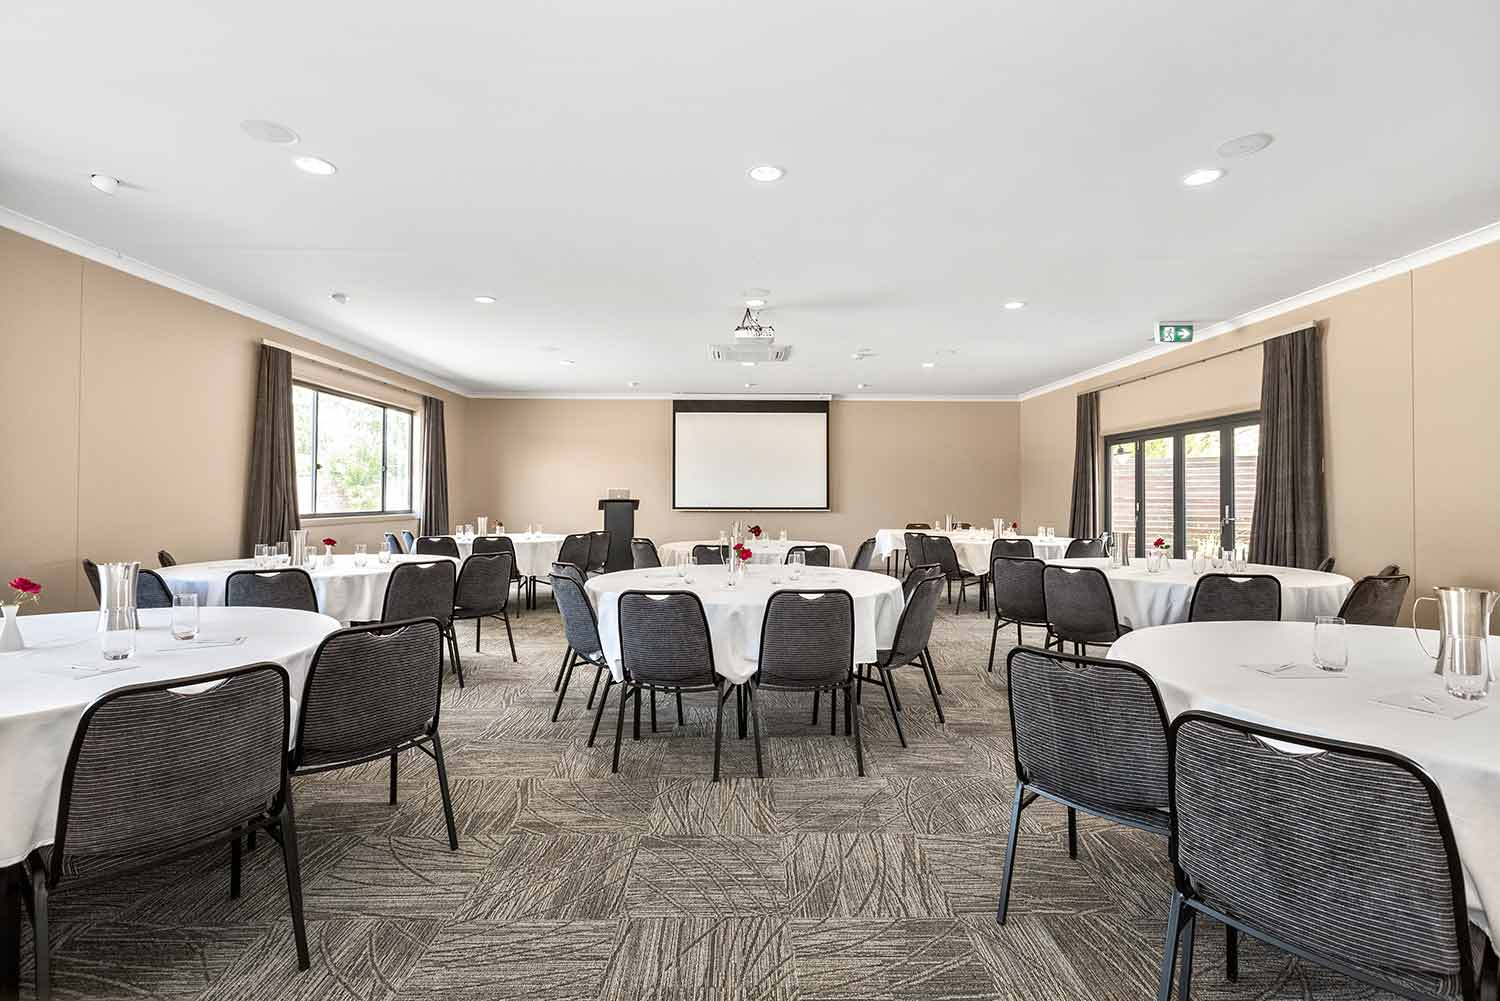 The perfect space for any conference